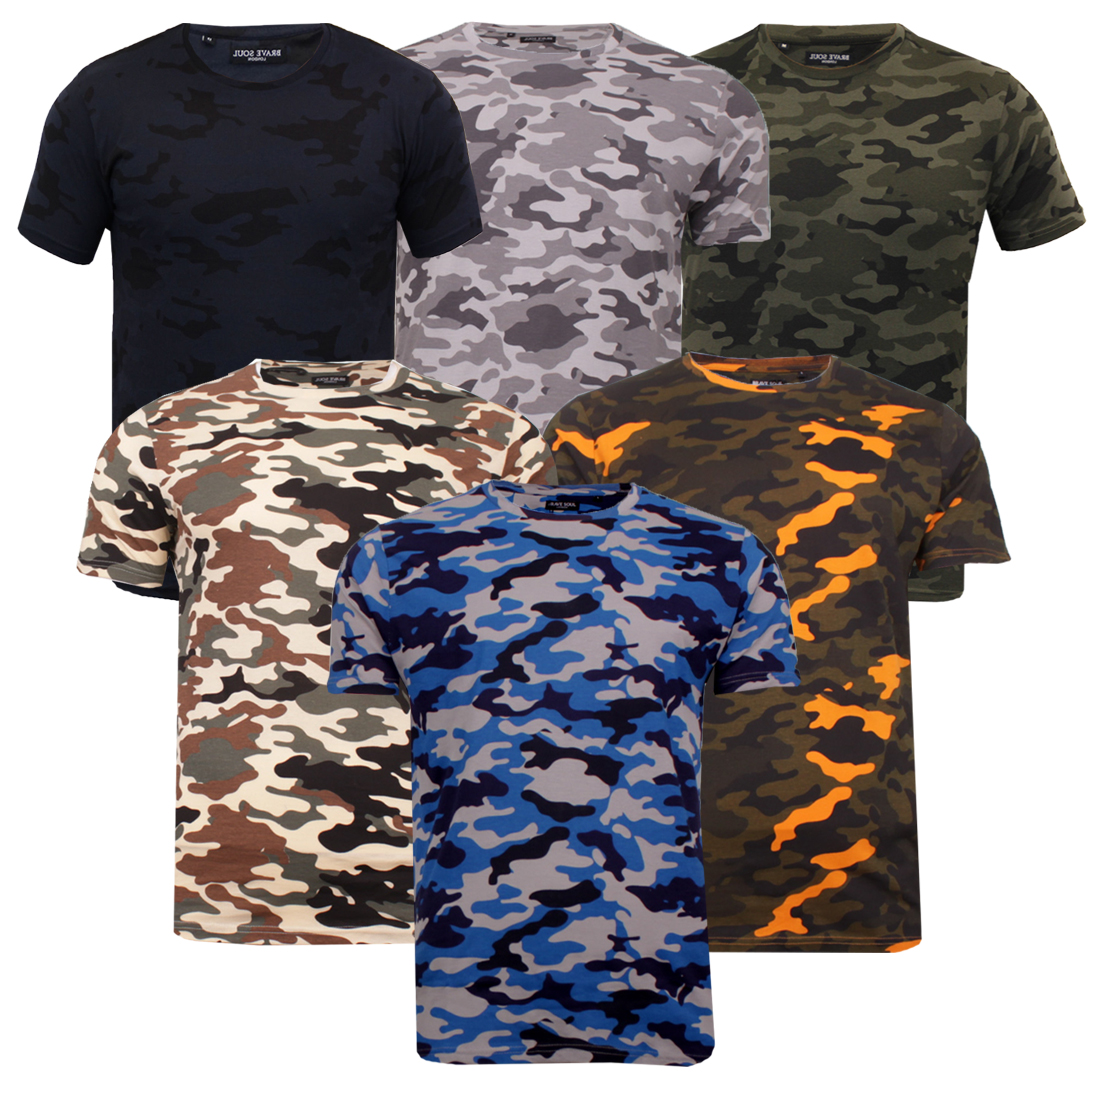 199fd303 Men's Brave Soul 100% Cotton Camo Disguise T-Shirt Military Camouflage Tee